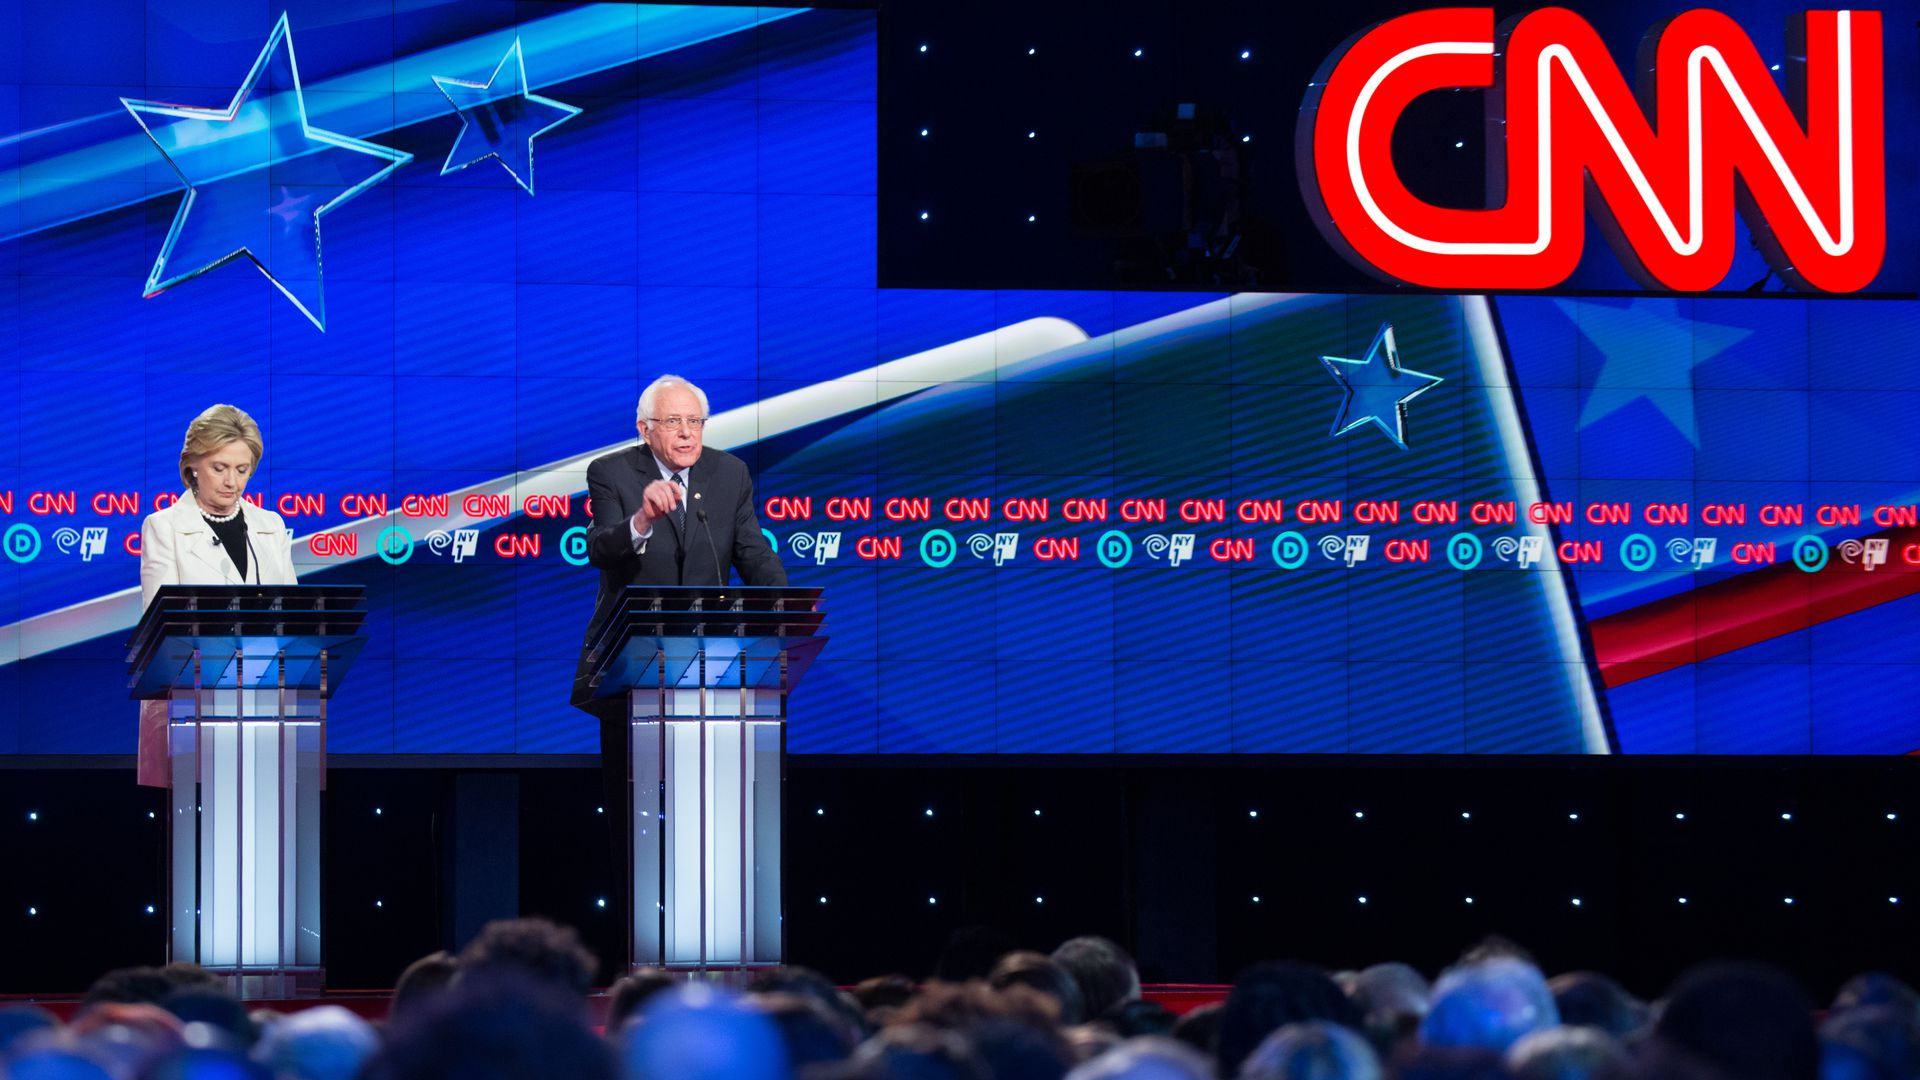 Hillary Clinton and Bernie Sanders during the 2016 Democratic candidate debates hosted by CNN